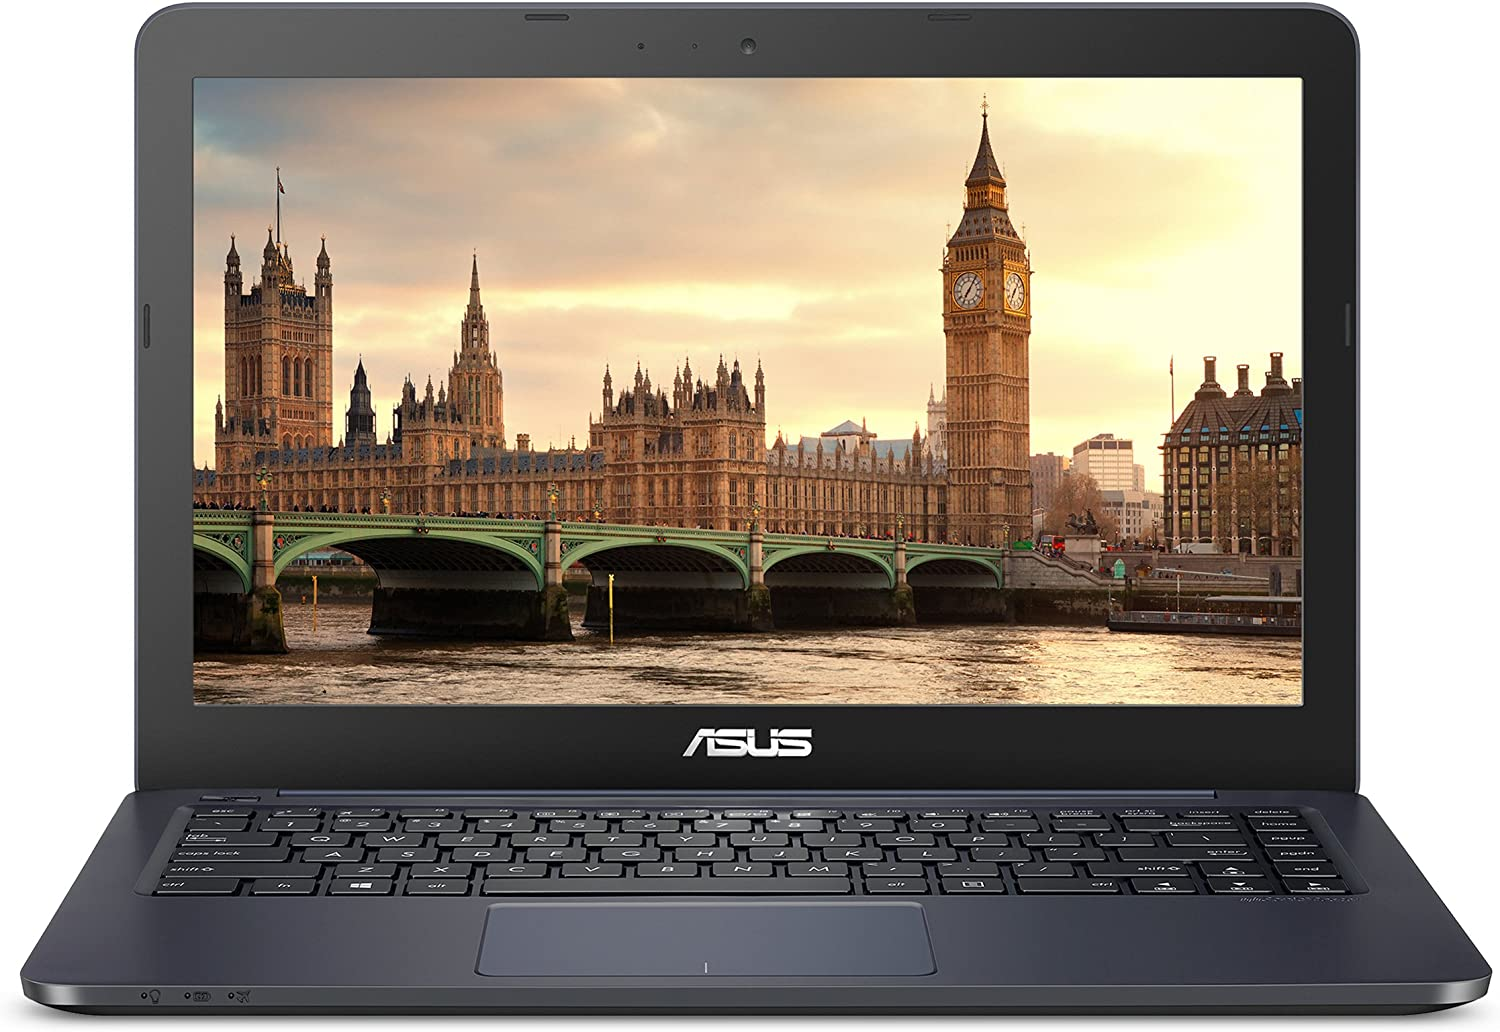 "ASUS L402YA Thin & Light Laptop, 14"" FHD; AMD E2-7015 Dual Core Processor, AMD Radeon R2 Graphics, 4GB RAM, 64GB eMMC Storage, Windows 10 S with 1yr Office 365 Included, Dark Blue, L402YA-ES22-DB"